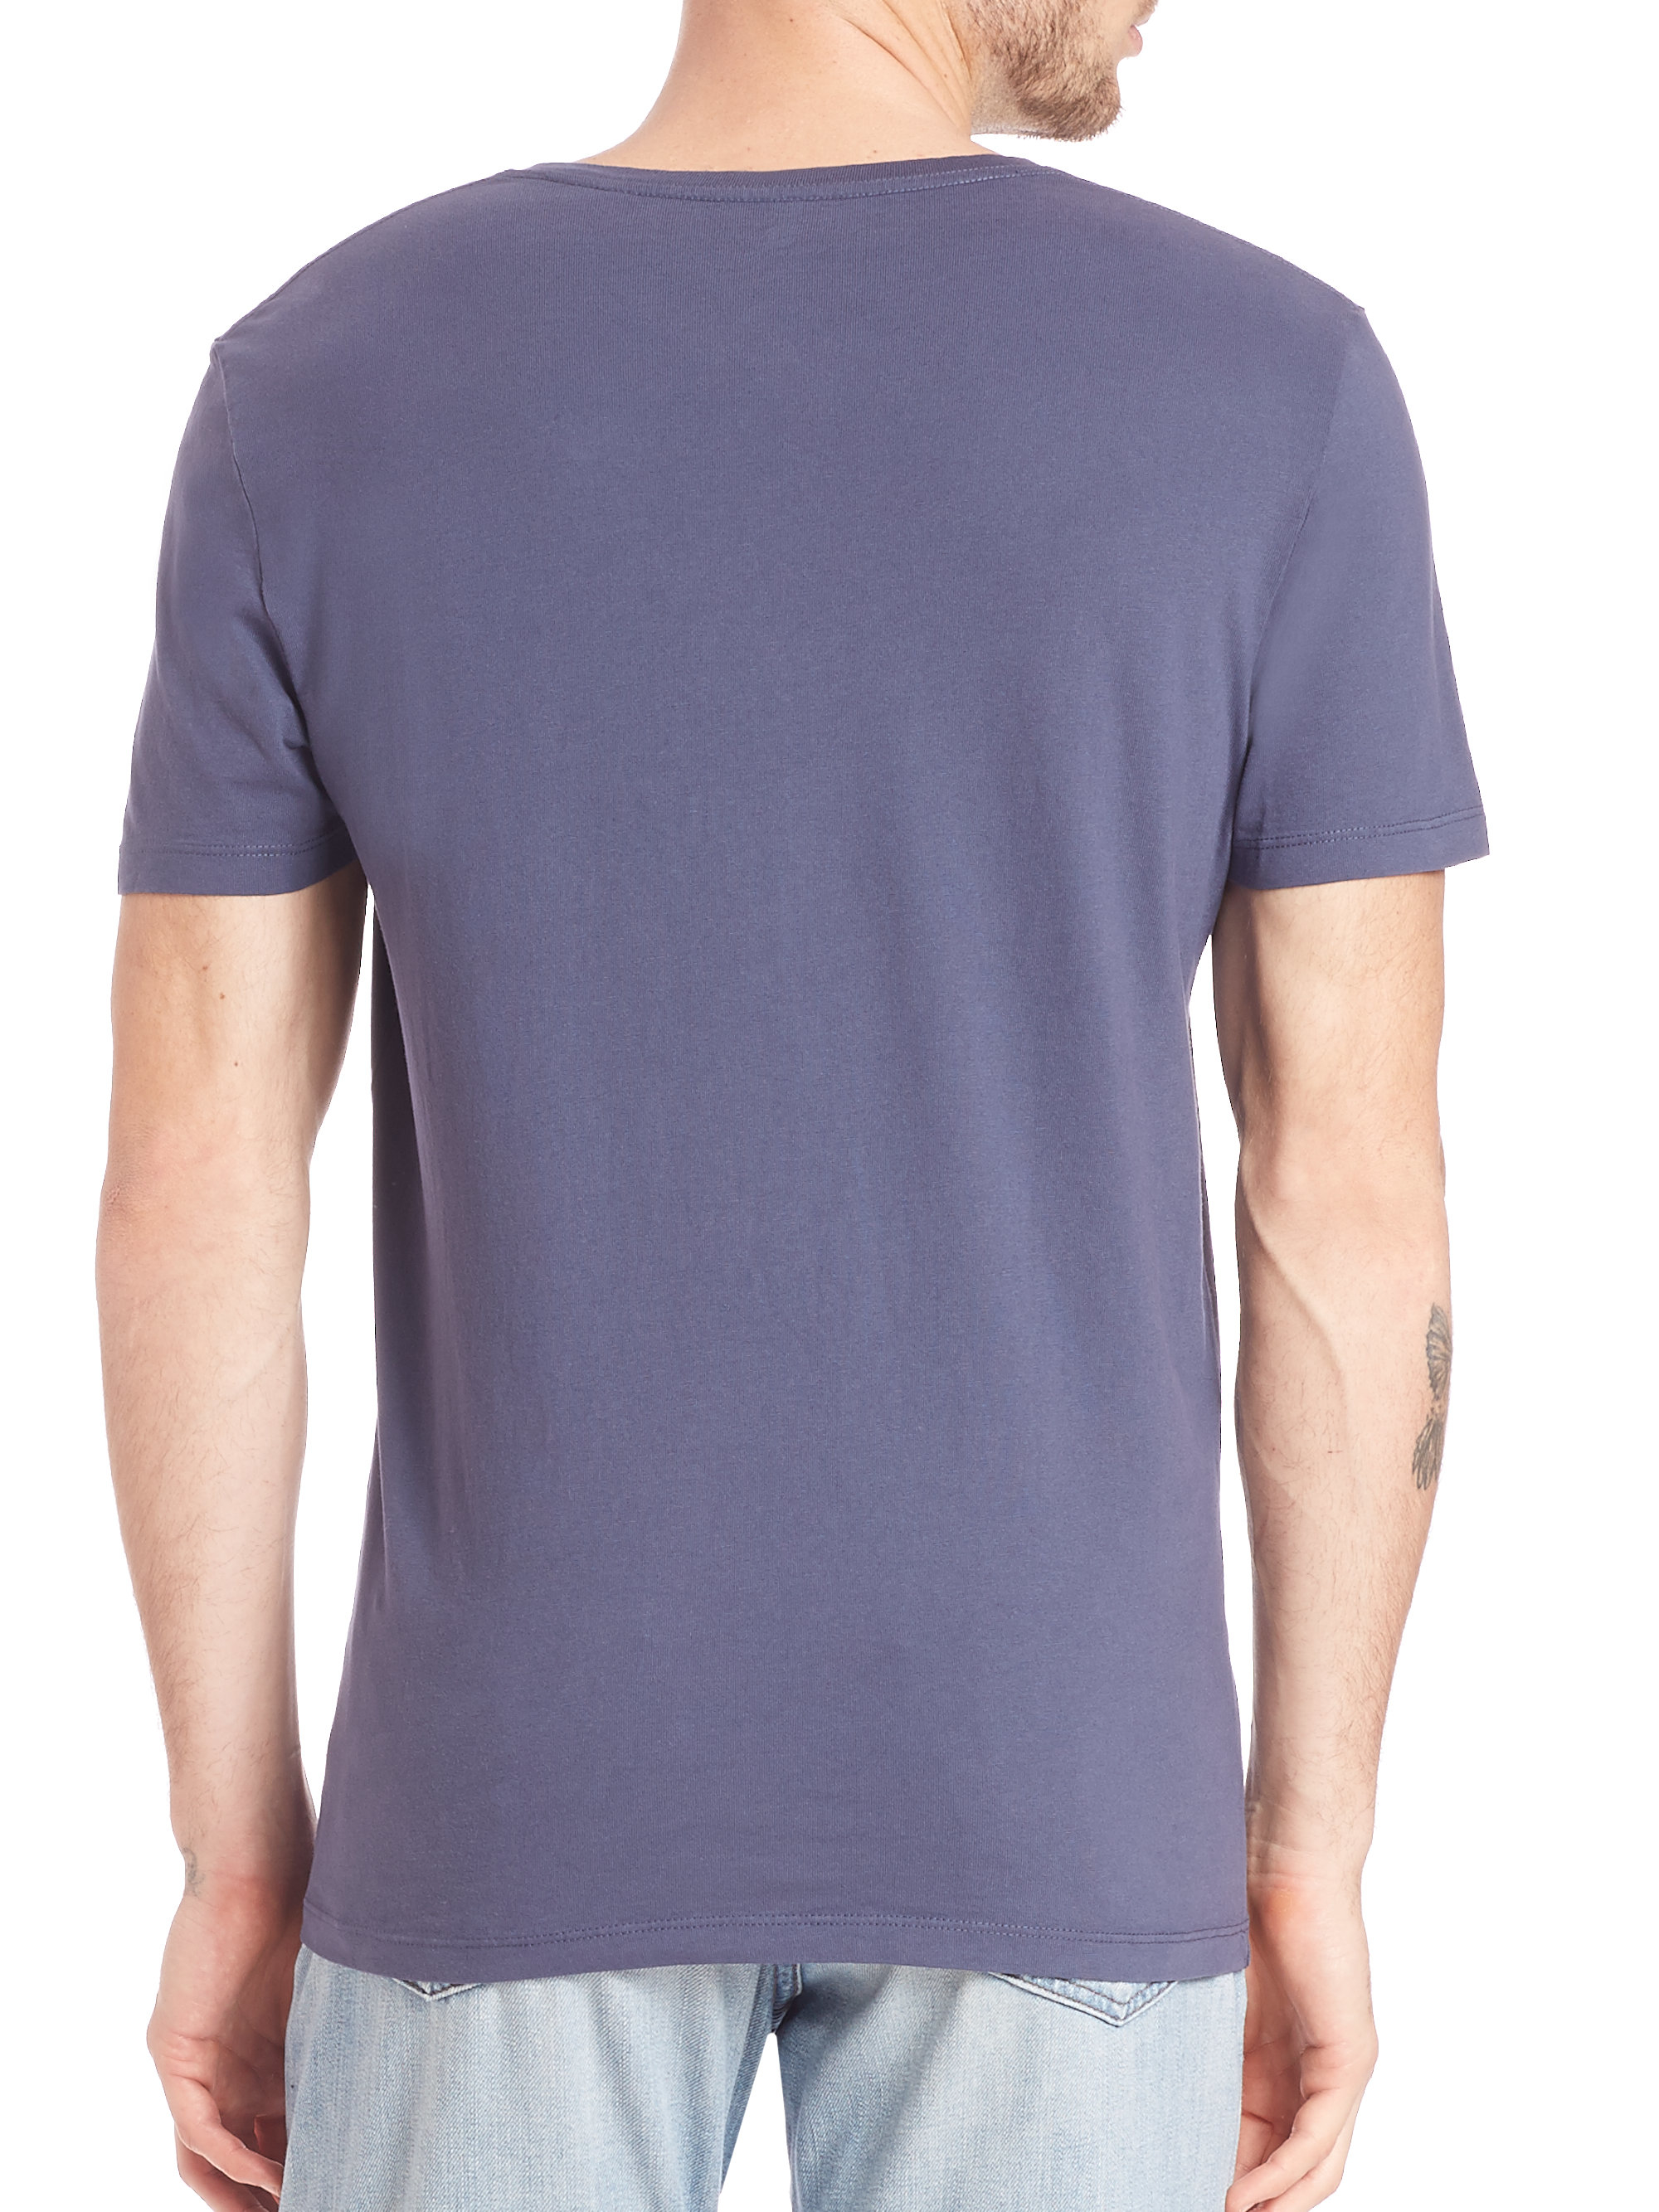 Lyst Ag Jeans The Cliff Crew Pima Cotton Tee In Blue For Men